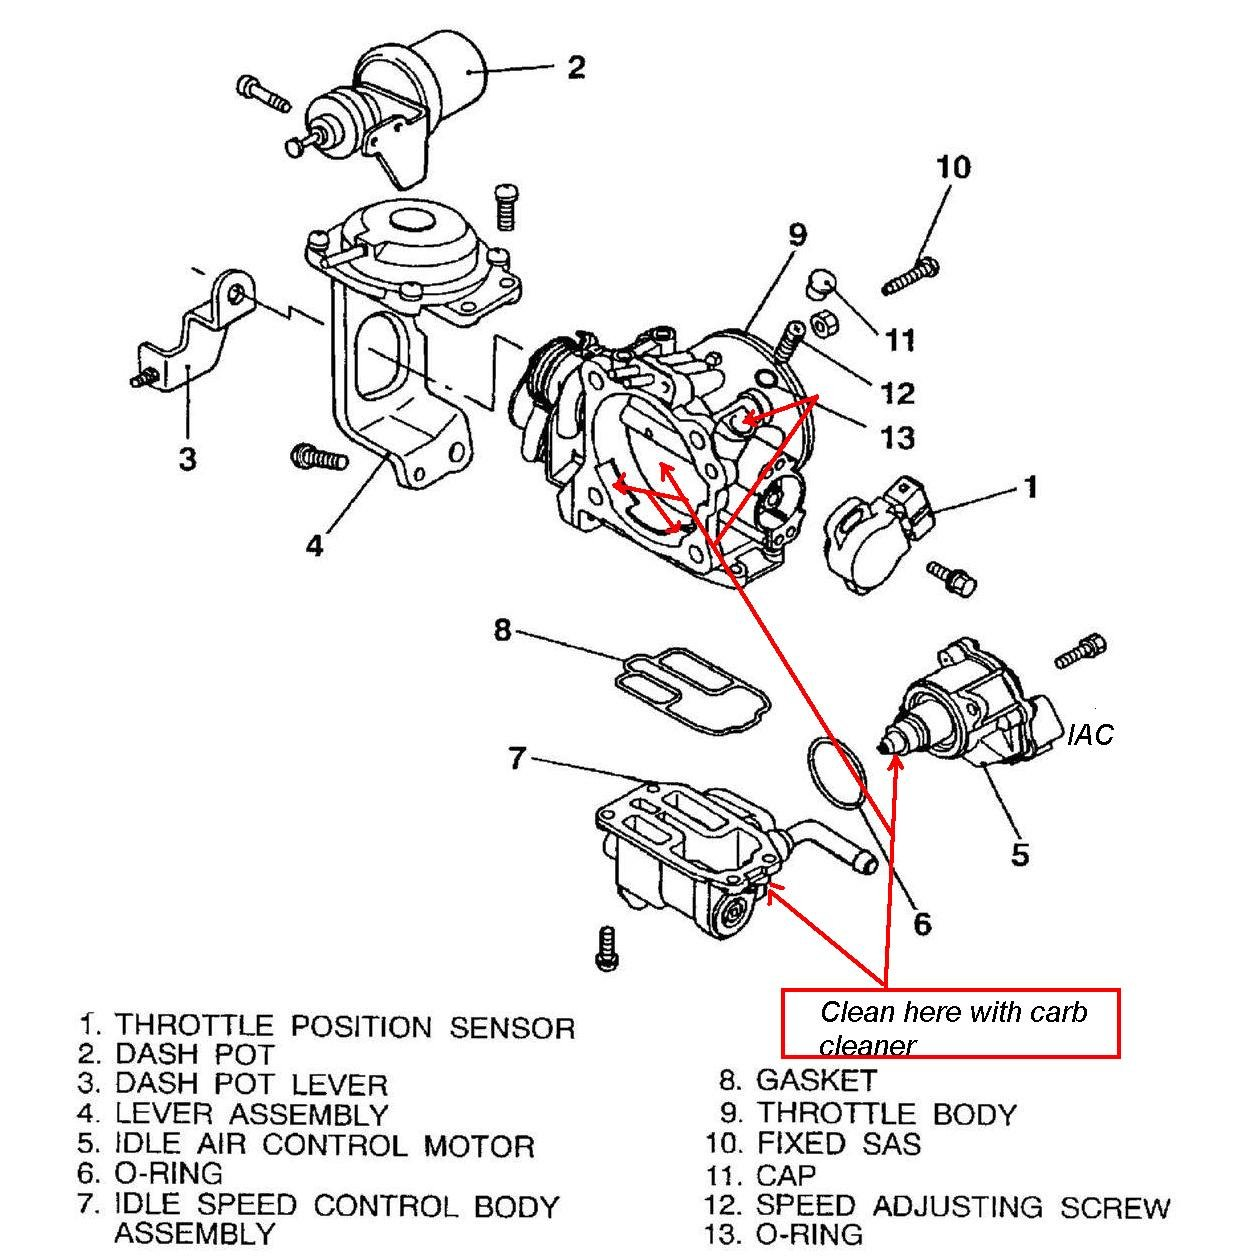 1998 Jeep Cherokee Sport Fuse Diagram Simple Guide About Wiring Mitsubishi Montero Parts Imageresizertool Com 98